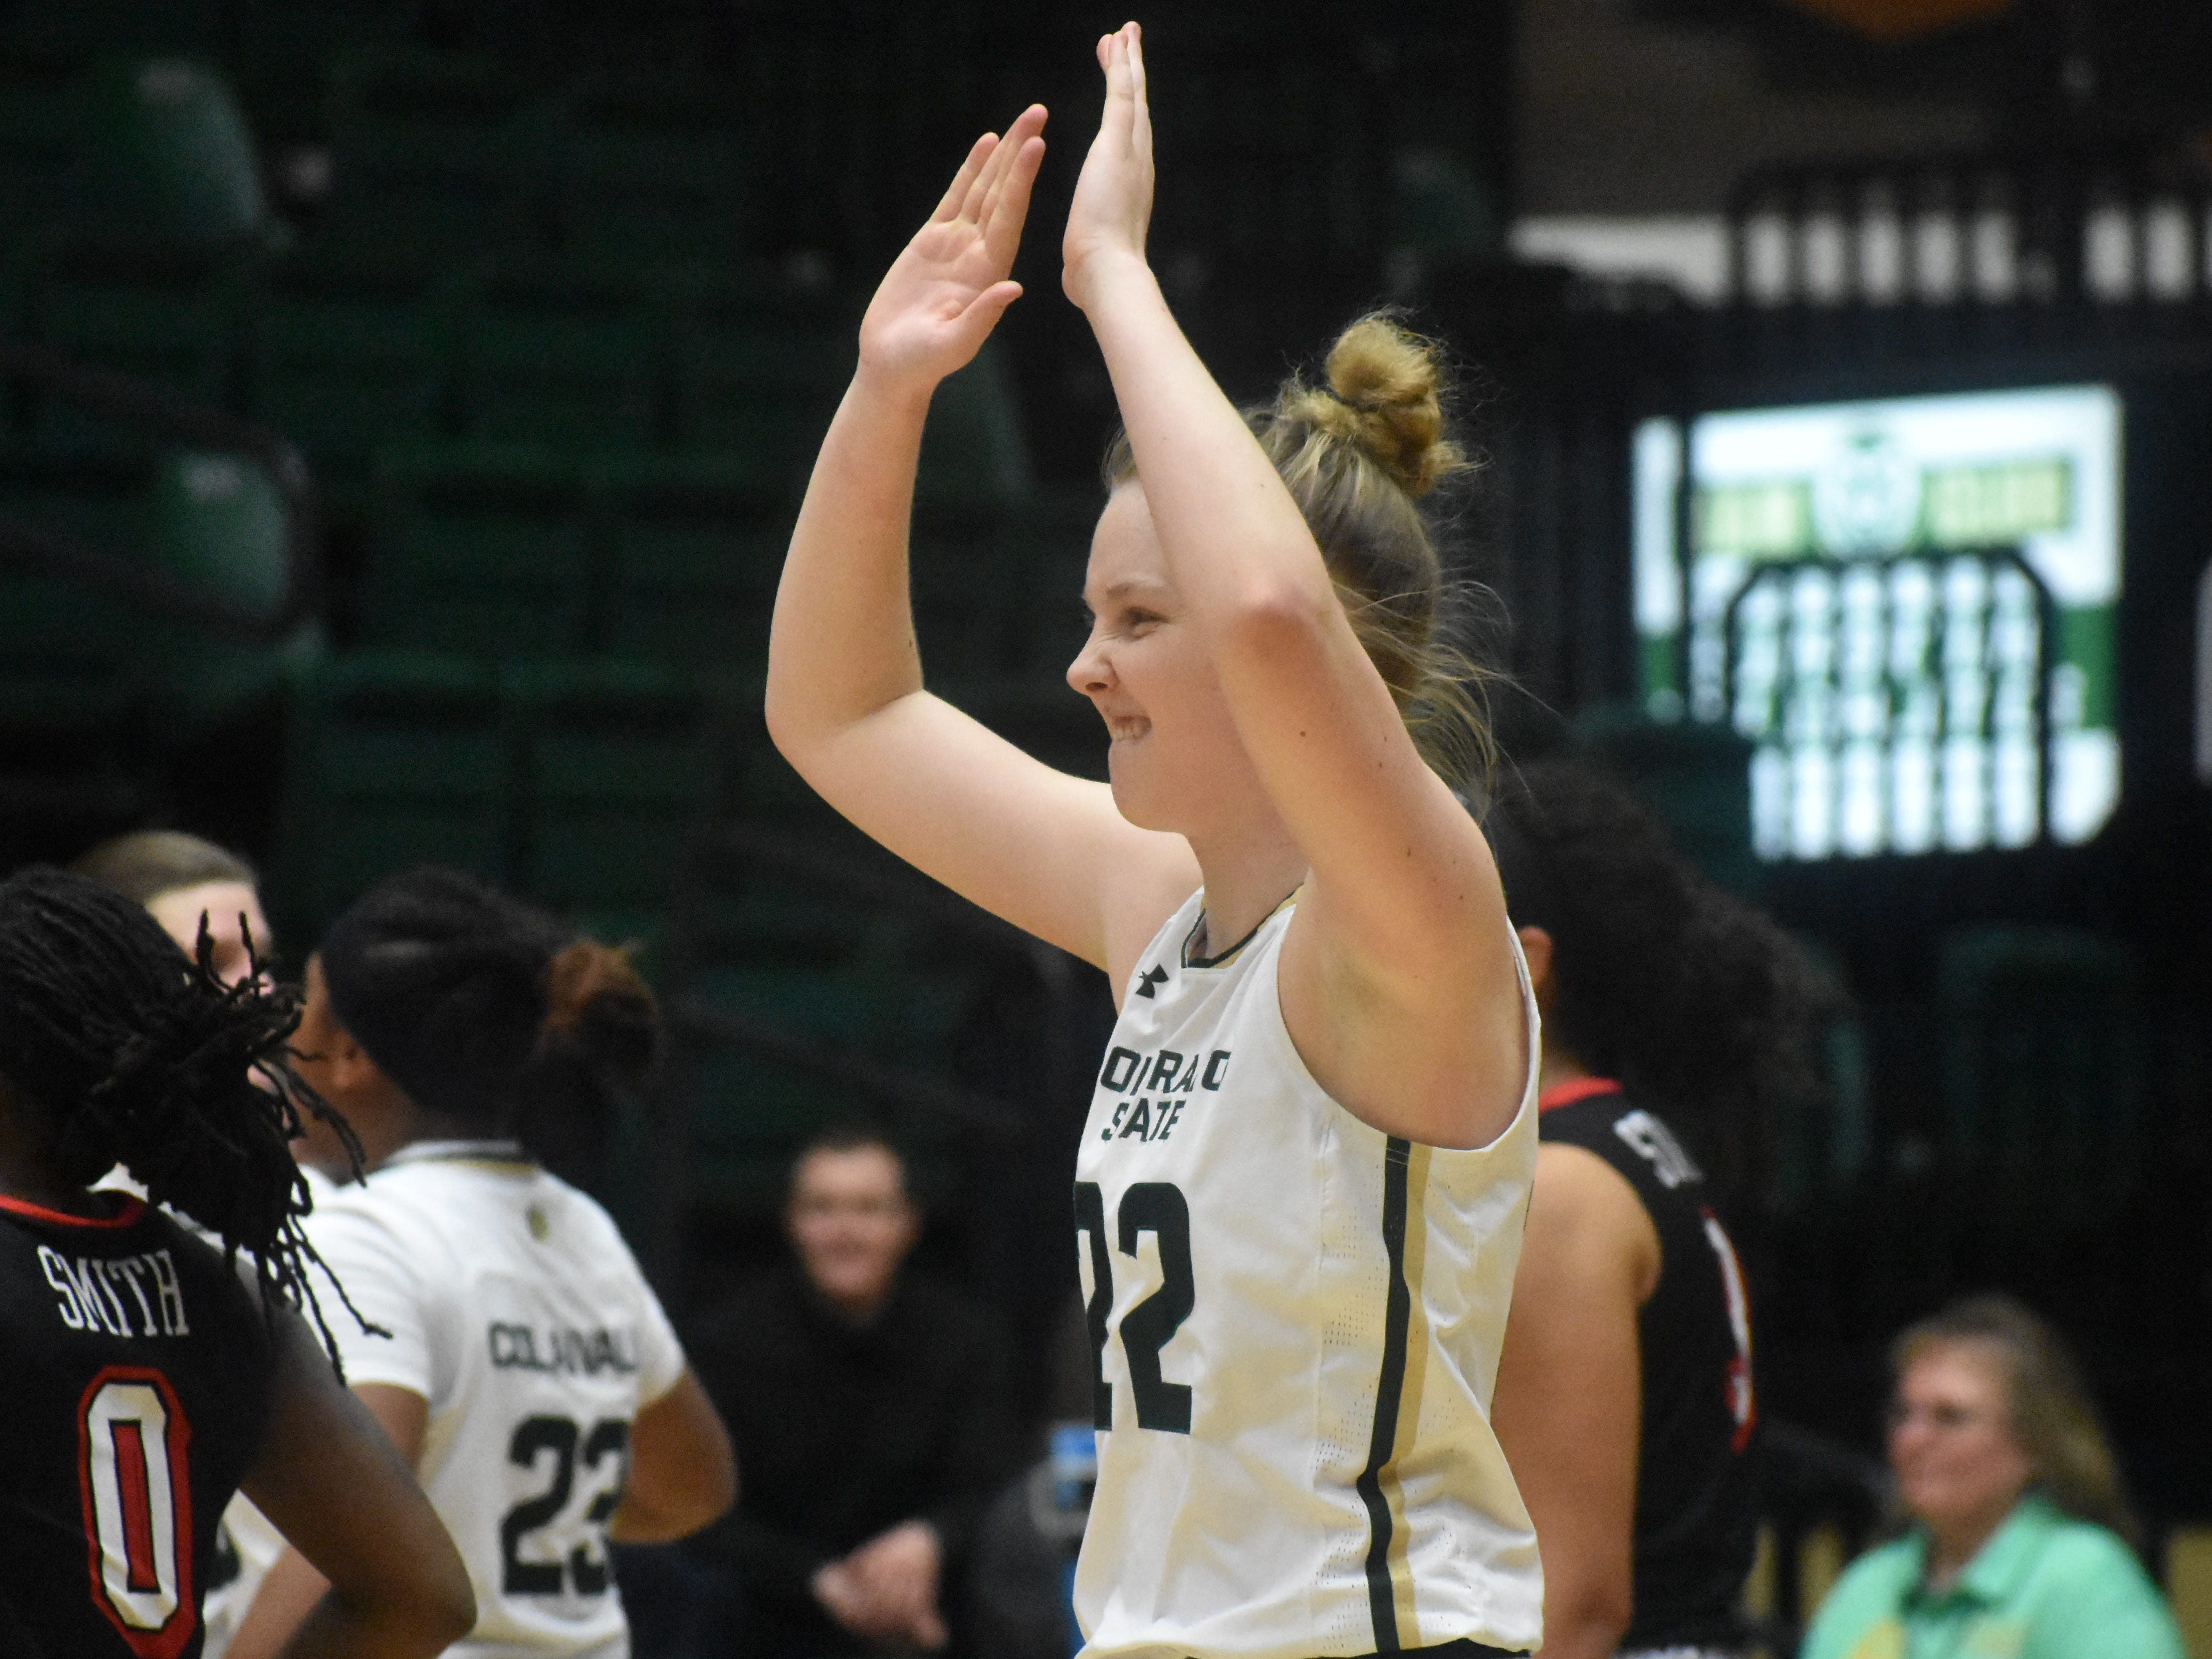 Colorado State guard Lauren Brocke celebrates after the Rams beat UNLV 52-49 on Wednesday at Moby Arena.